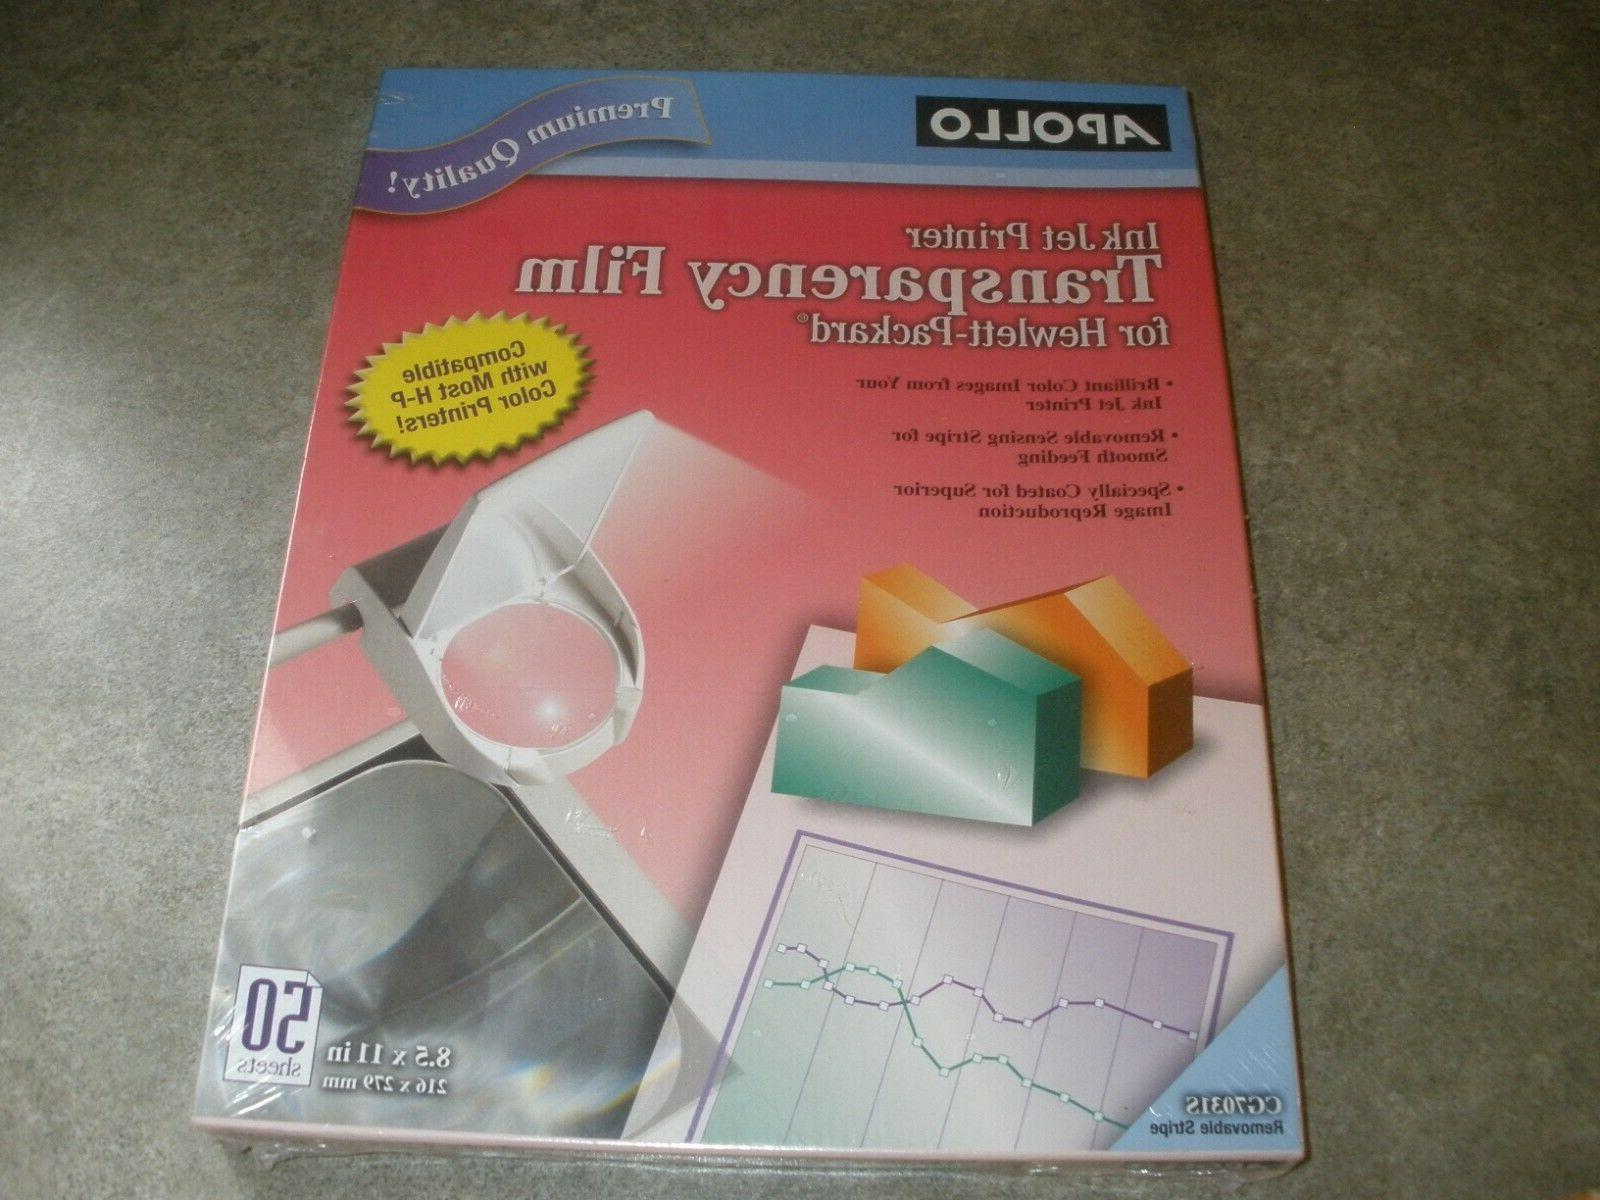 APOLLO Transparency Film For Ink Jet Printers CG7031S 50 she